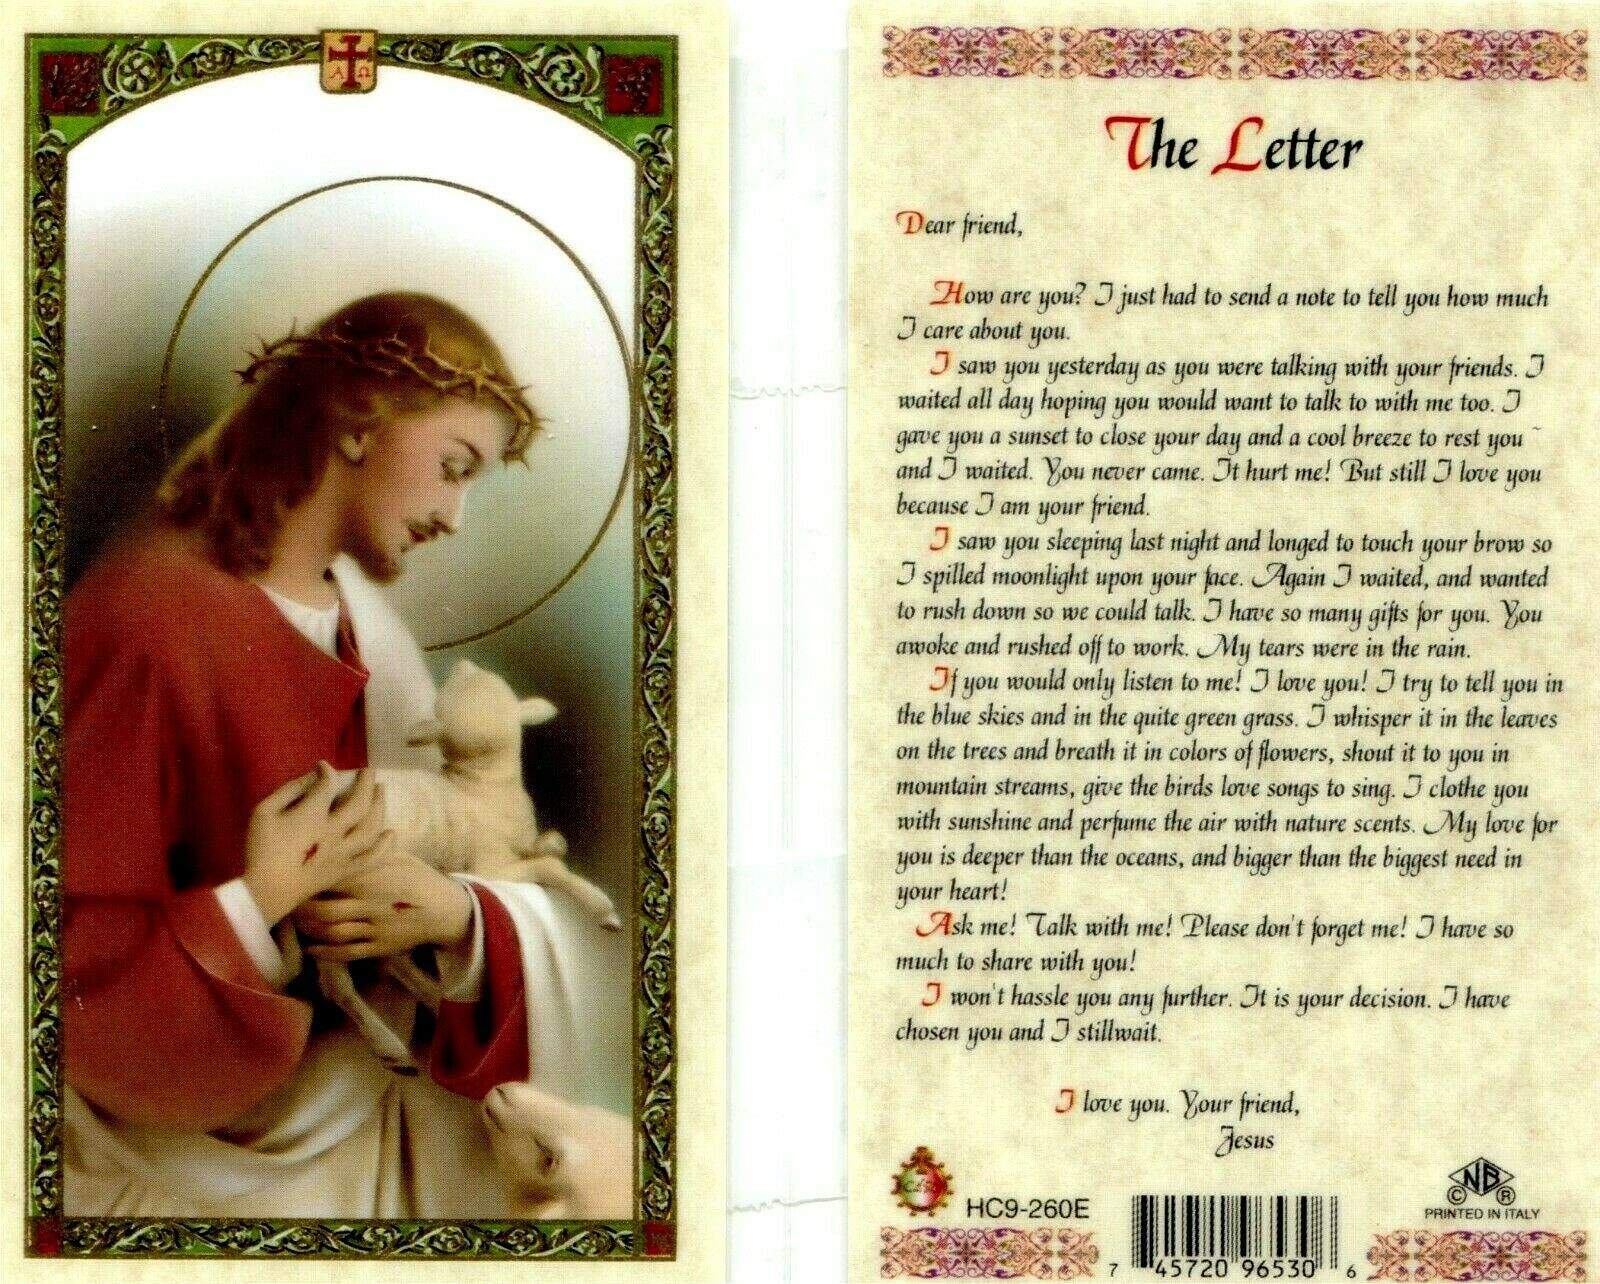 Primary image for A Letter From Jesus Laminated Prayer Card - Item EB116 - Dear Friend How are You